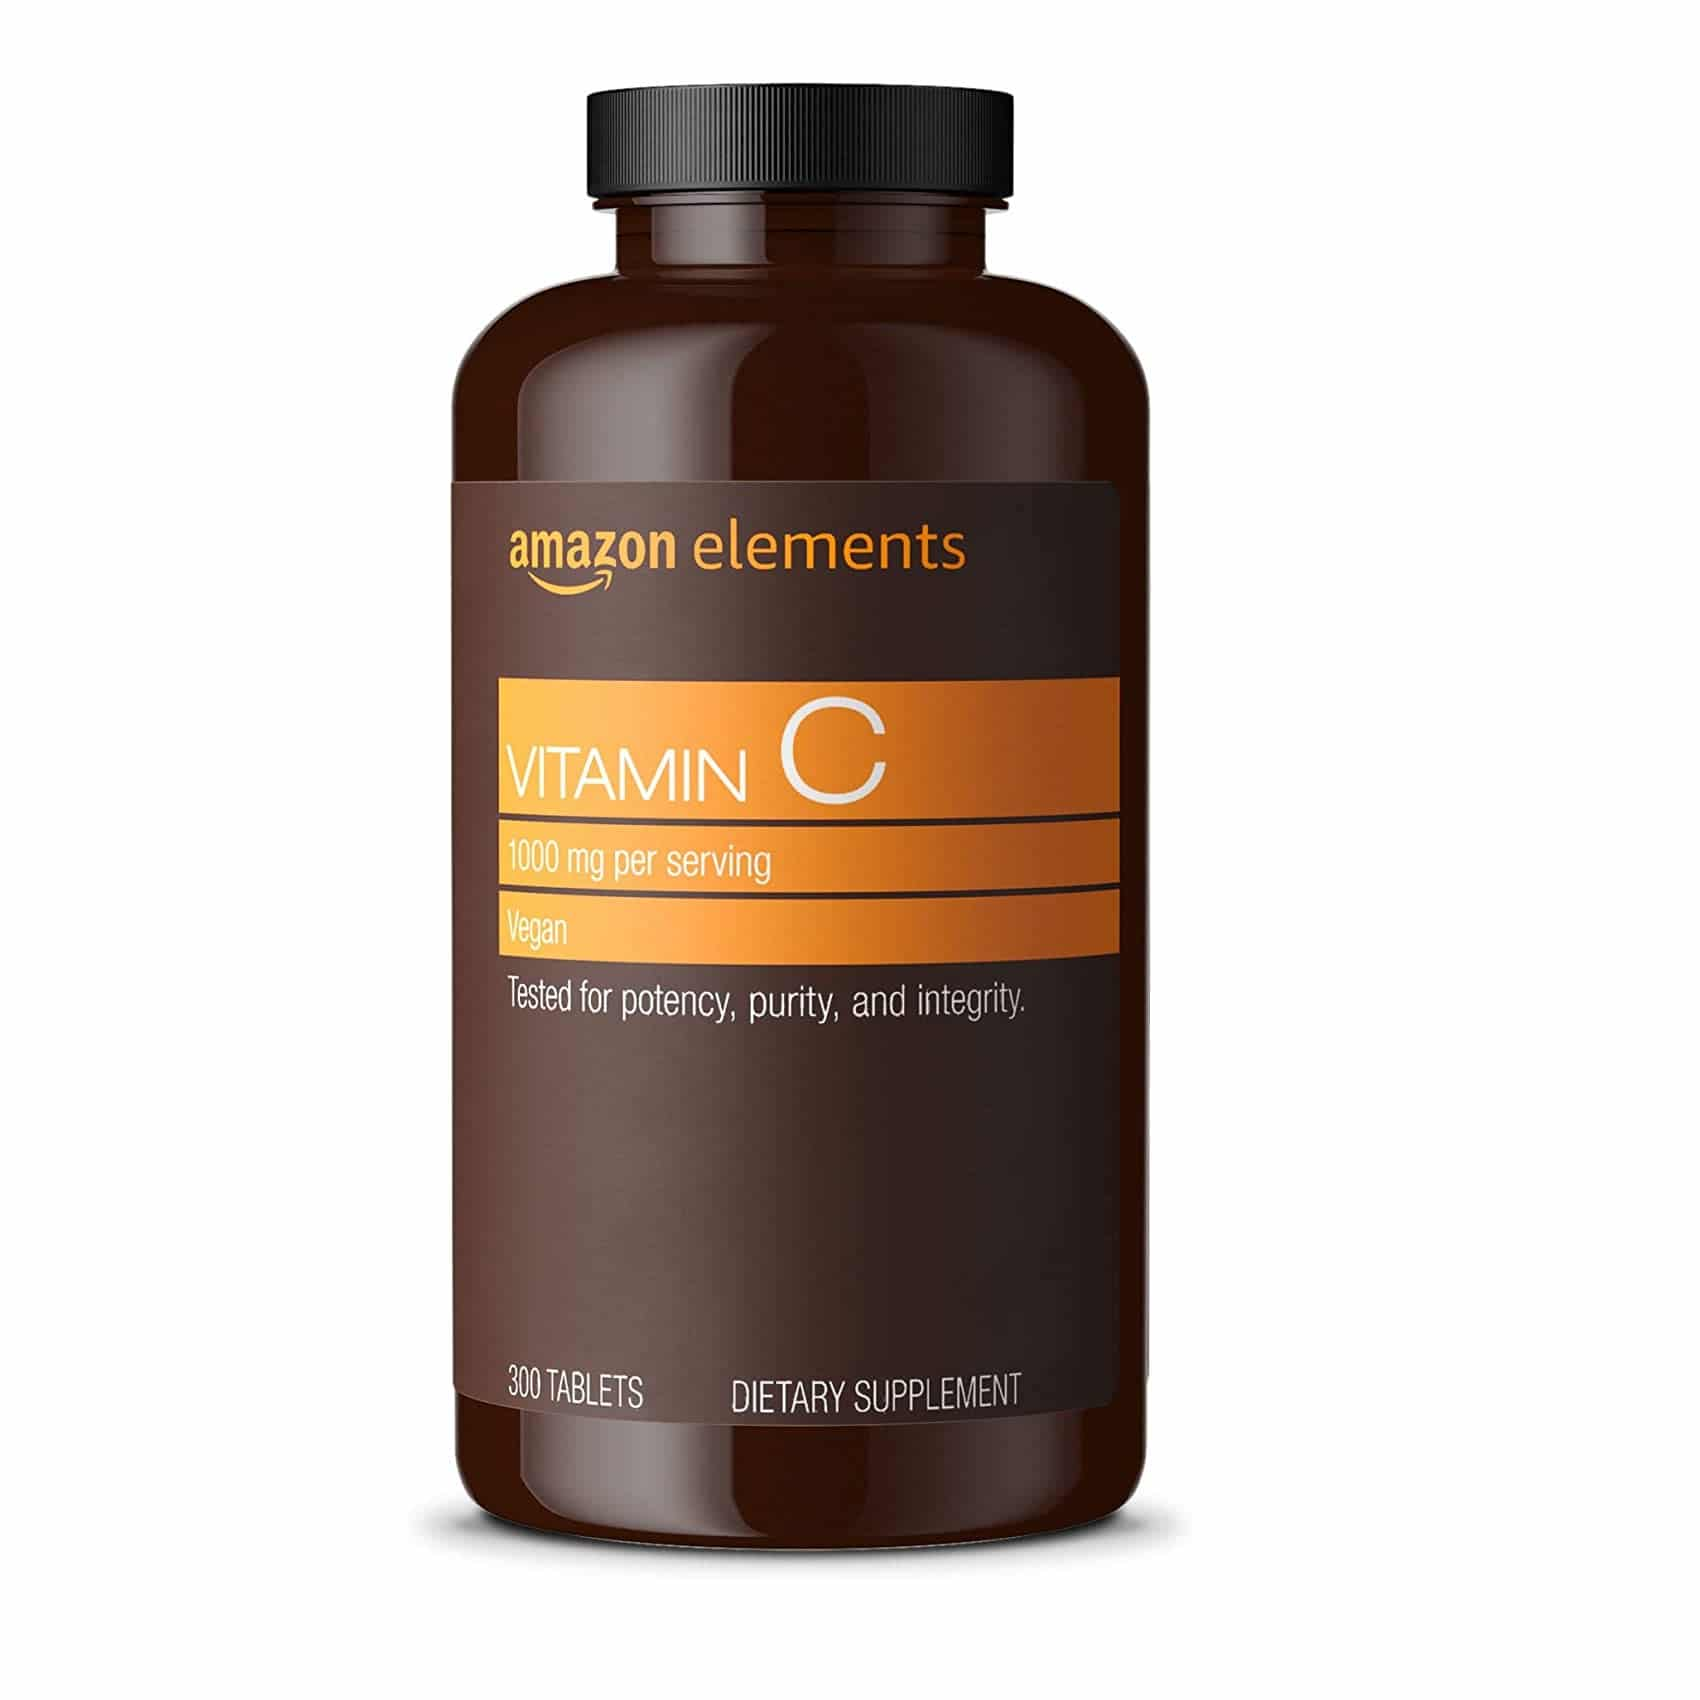 Best Vitamin C Supplement - Amazon Elements Vitamin C 1,000 mg Review